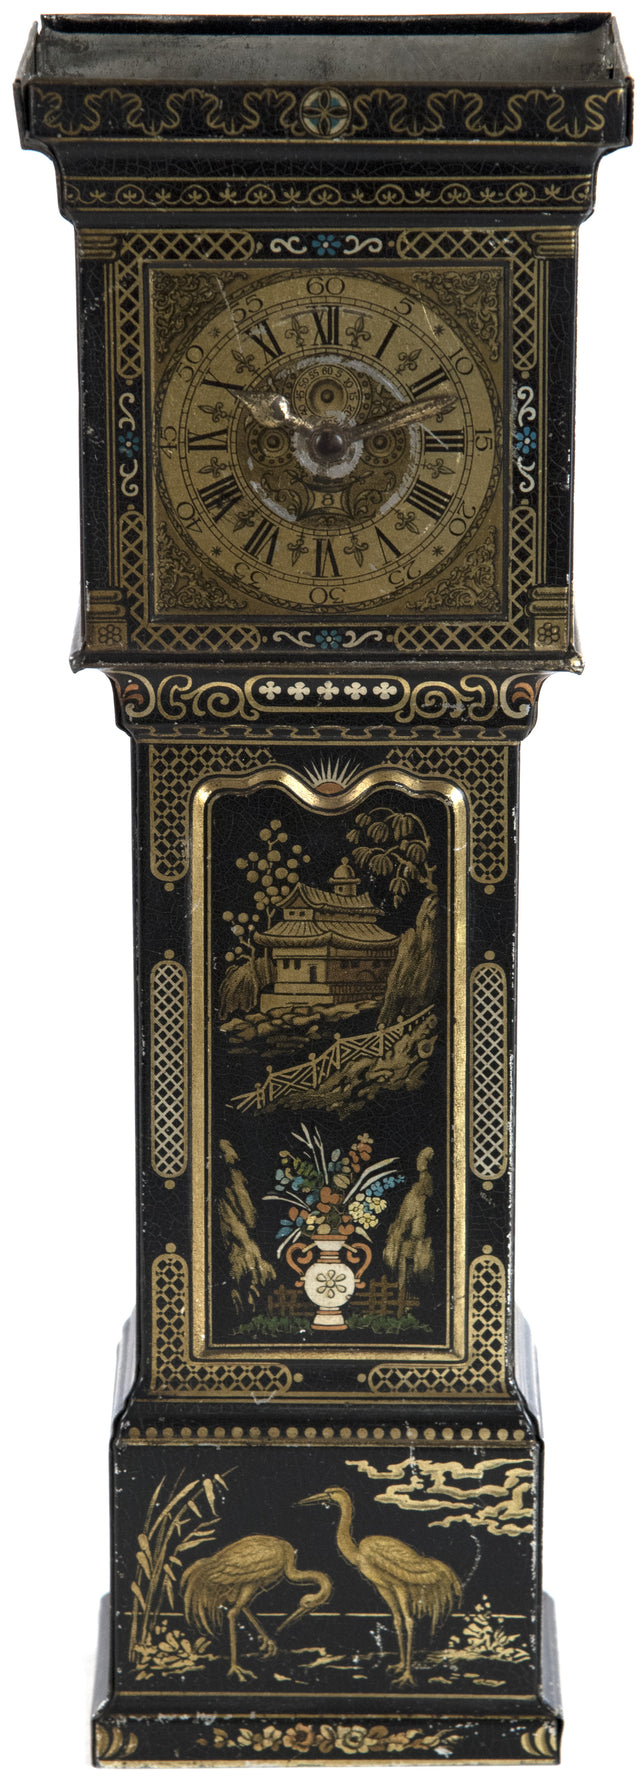 Huntley & Palmers Grandfather Clock Biscuit Tin